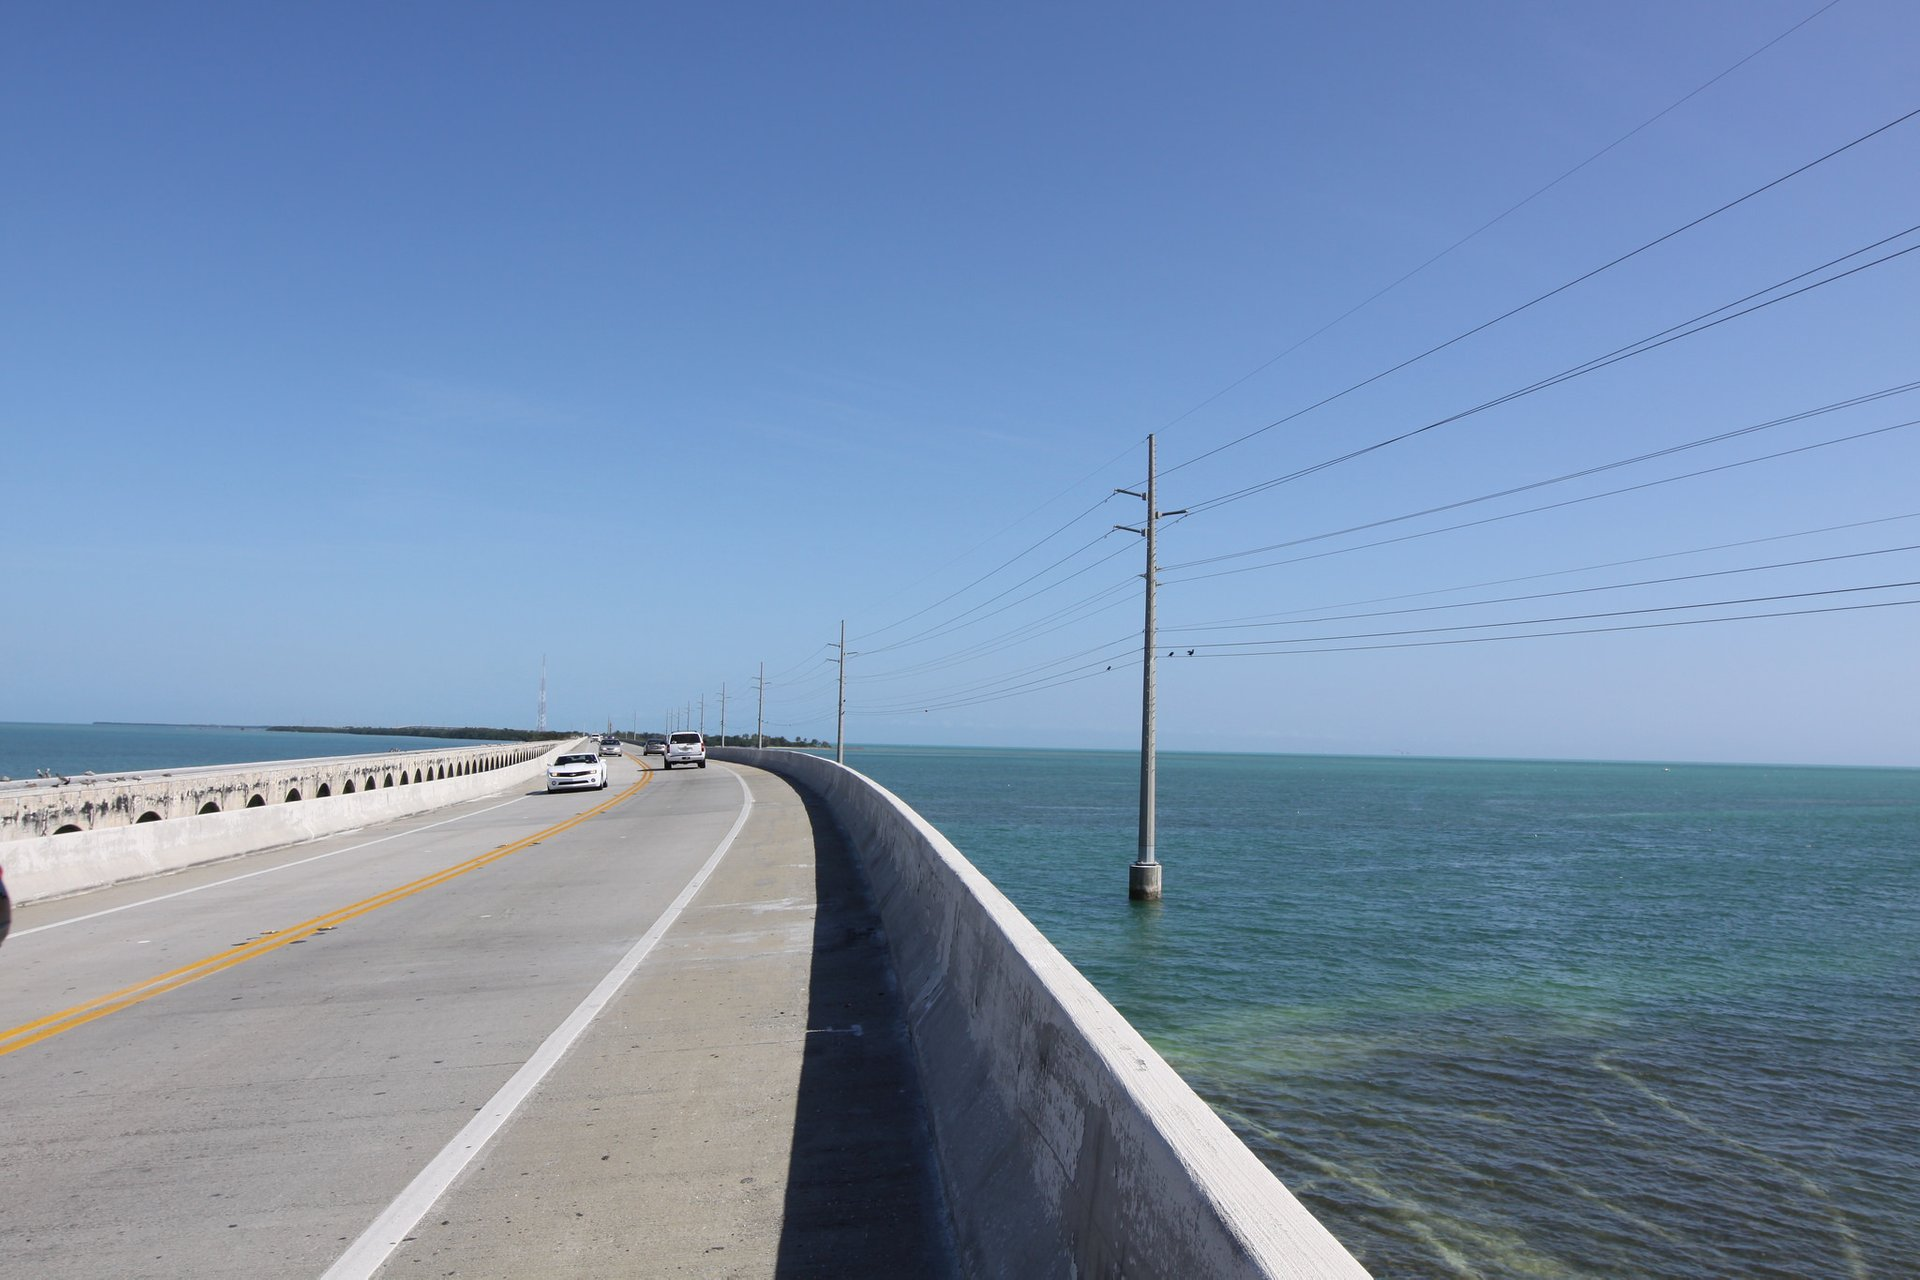 Overseas Highway in Key West & Florida Keys - Best Season 2020